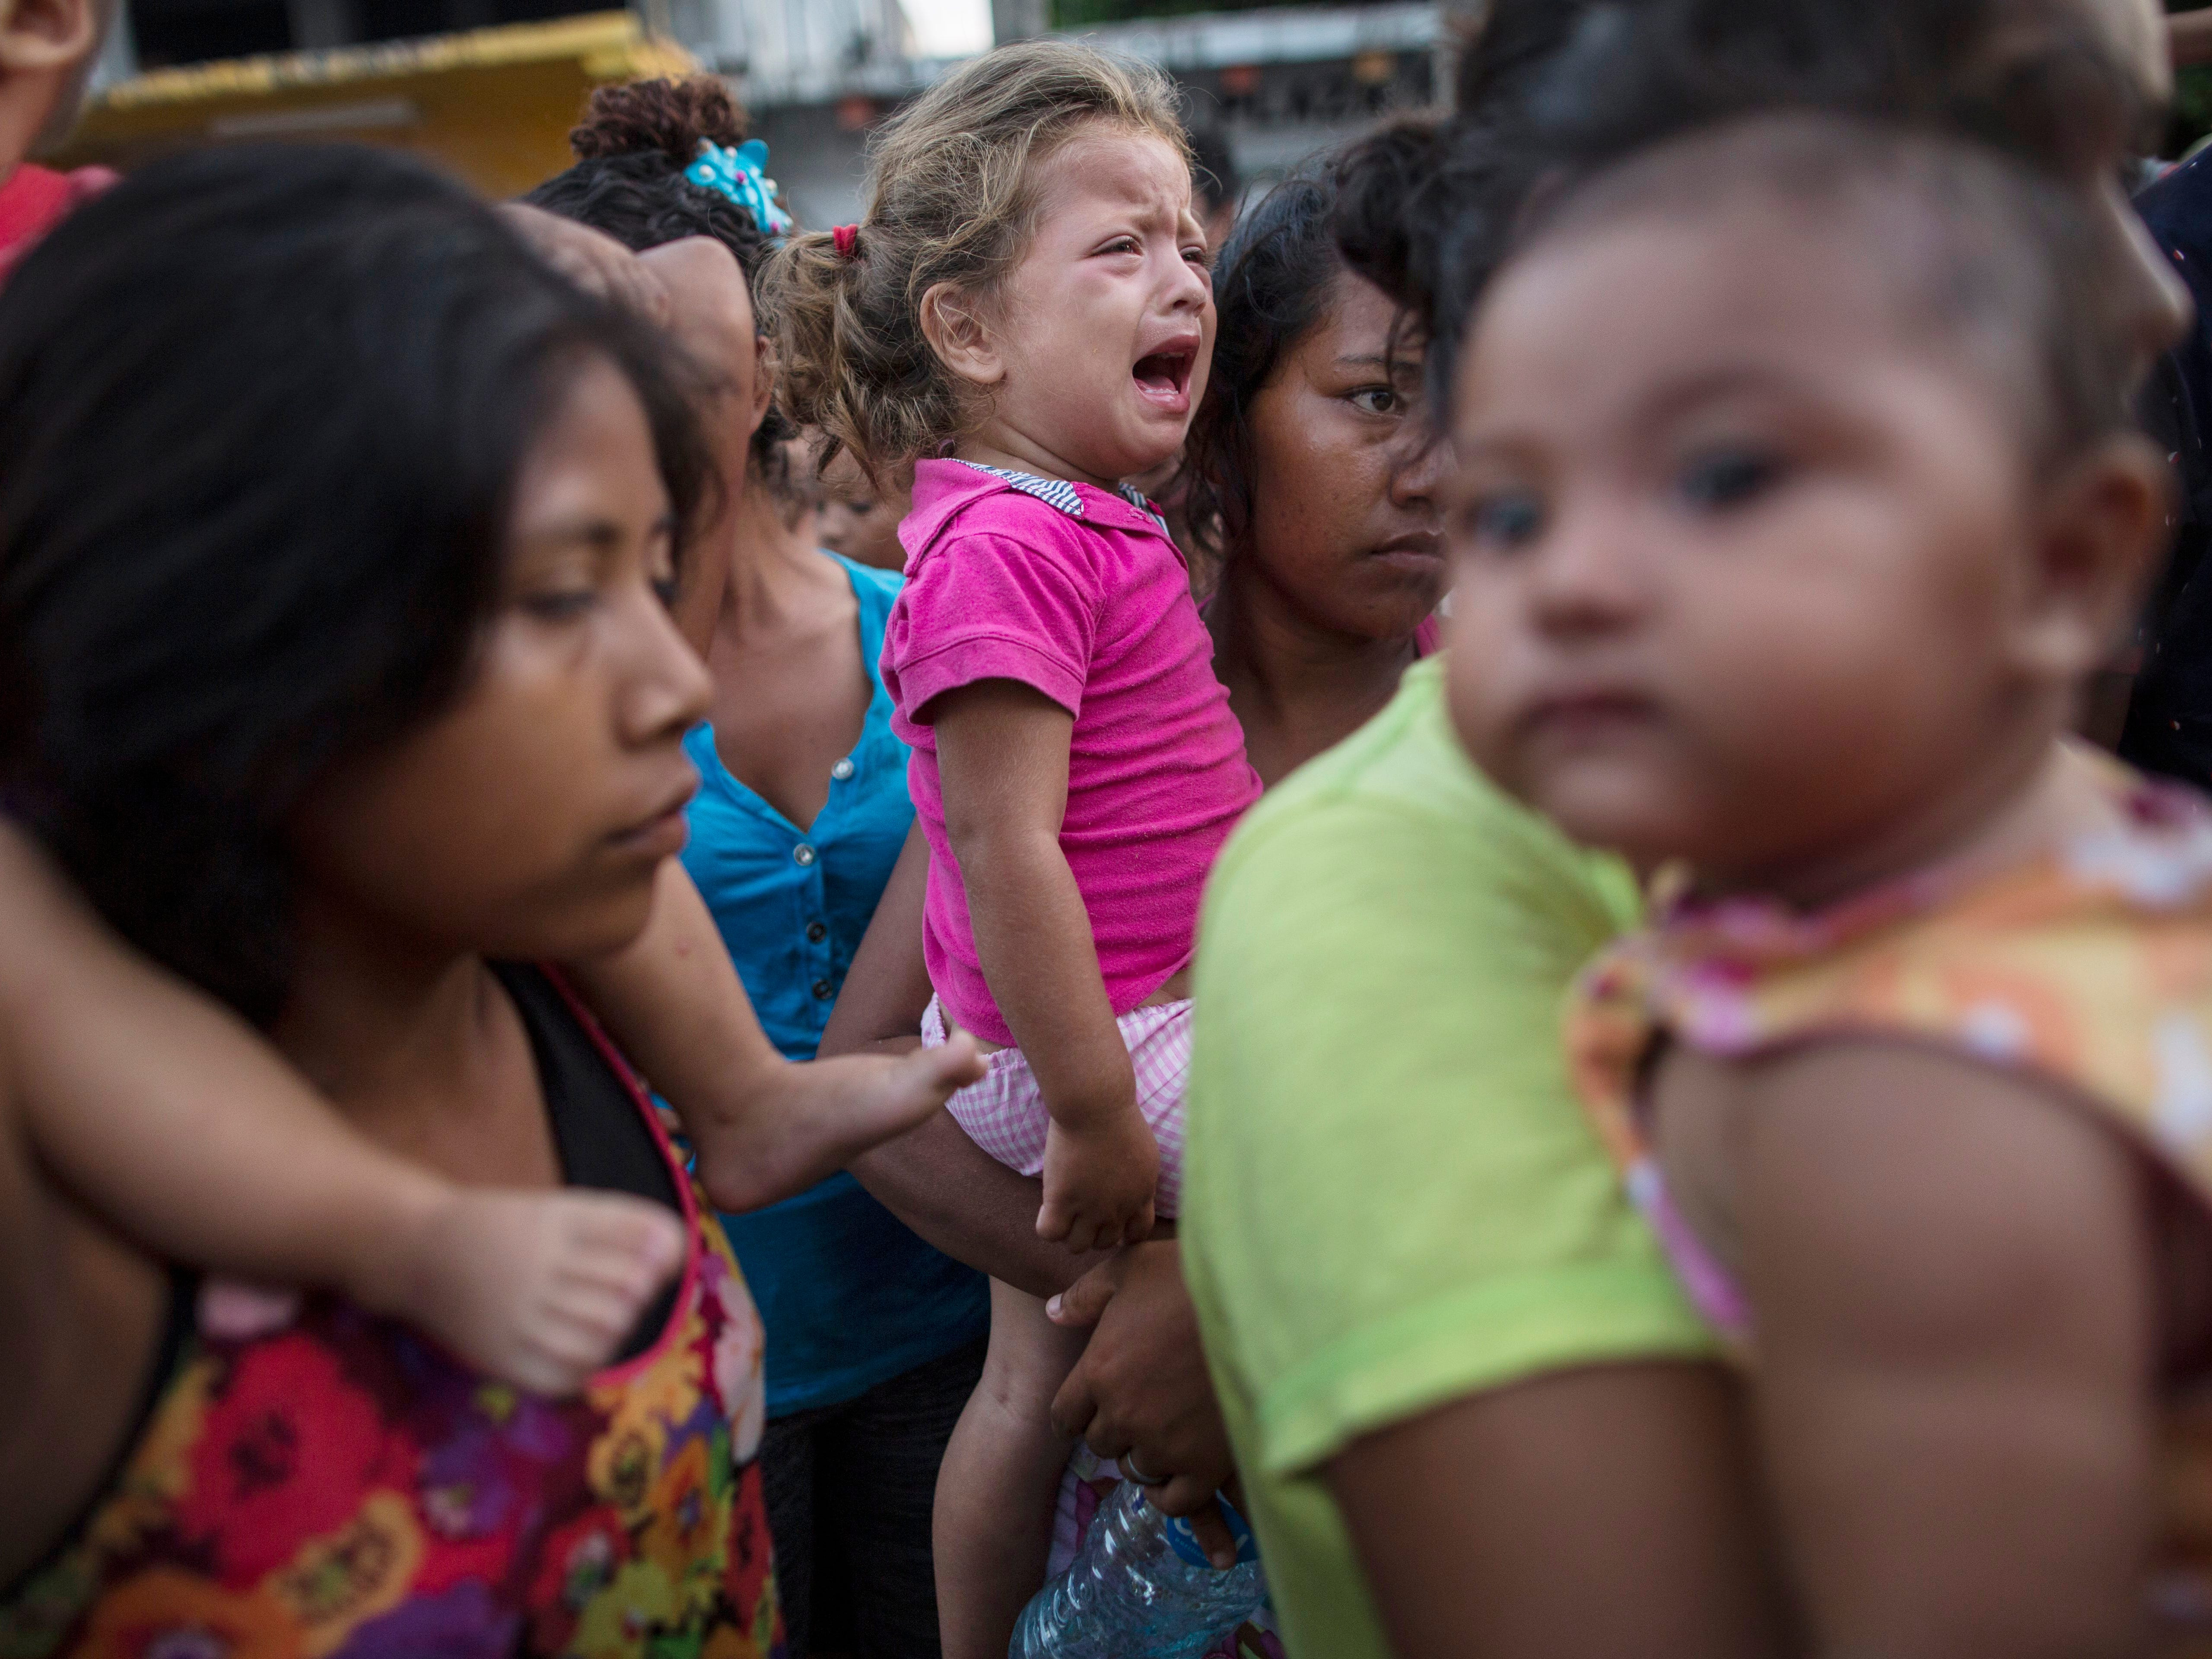 Delsy Alondra, 2, cries while waiting with her mother to receive donated food in Tapanatepec, Mexico on Oct. 28, 2018.